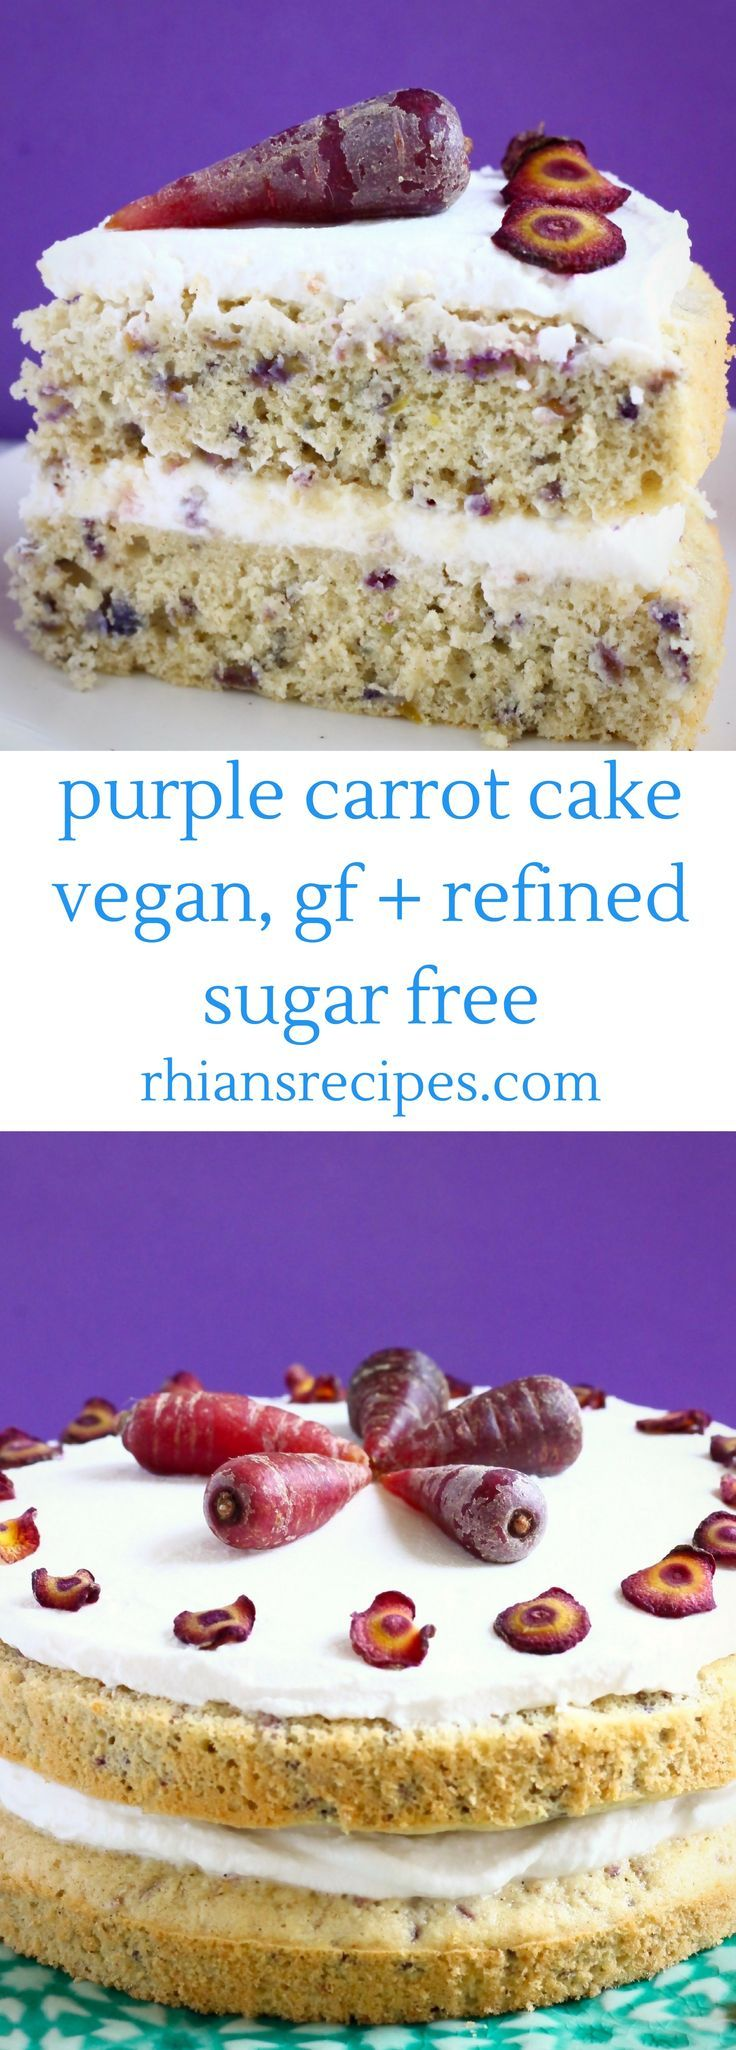 This Gluten-Free Vegan Purple Carrot Cake is pretty and colourful, naturally sweetened and slathered in a delicious cream cheese frosting! Refined sugar free.